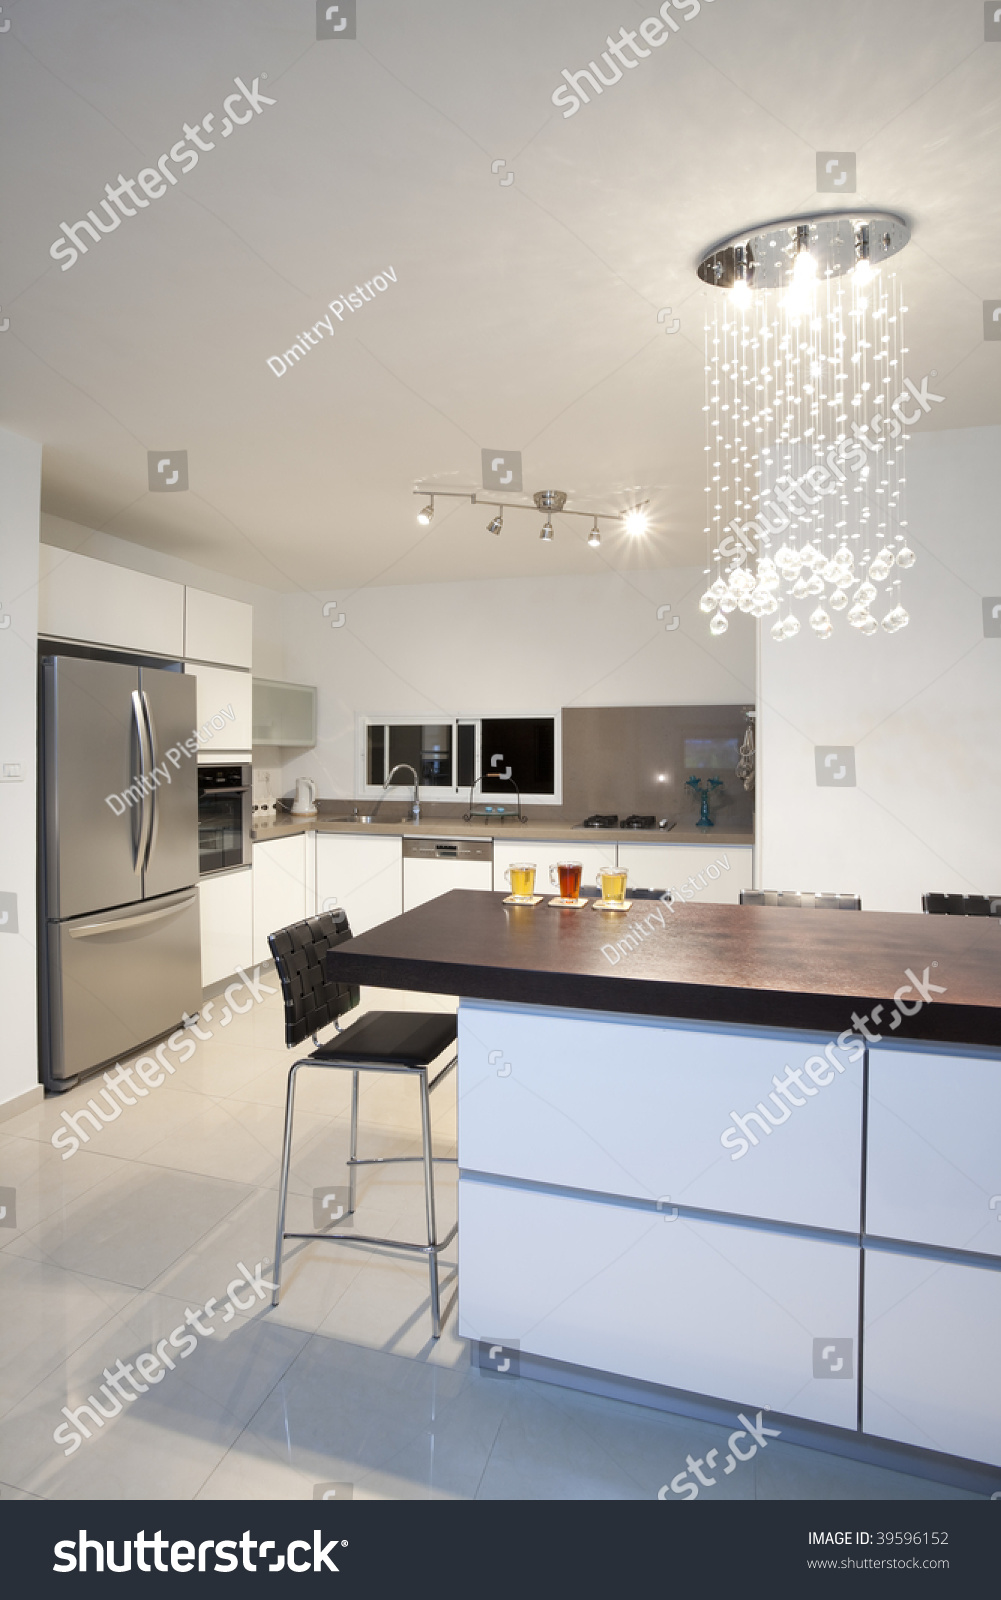 Modern Design Kitchen With White And Wood Elements Stock Photo 39596152 Shutterstock